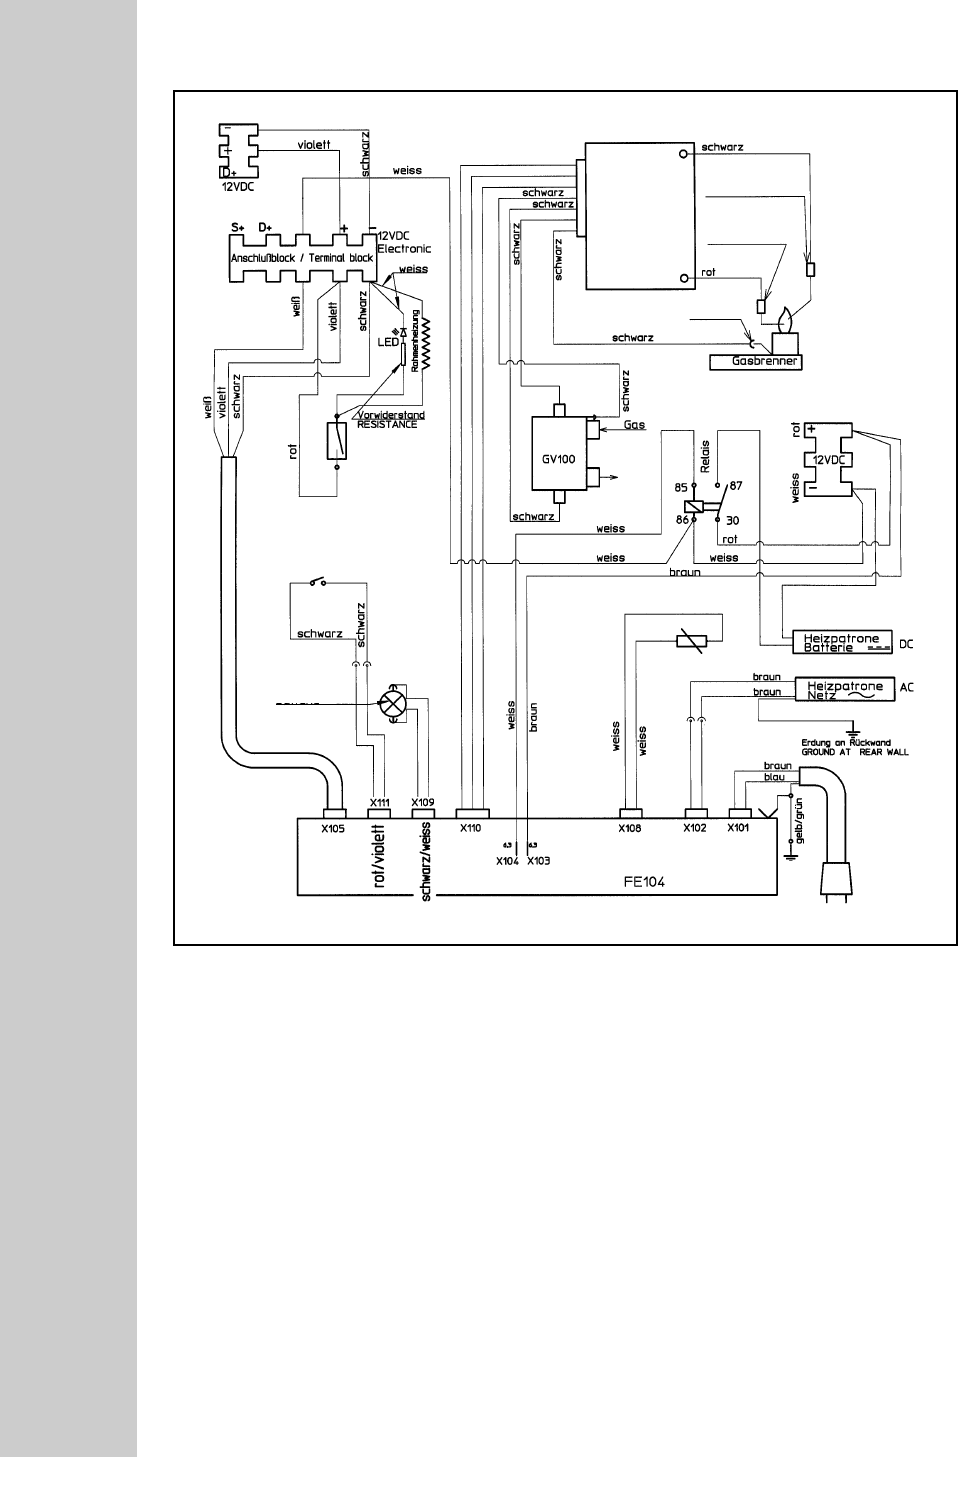 43fc0a23 351b 4018 b8ad f4061294773f bg1b page 27 of dometic refrigerator rm 7605 l user guide dometic refrigerator wiring diagram at edmiracle.co